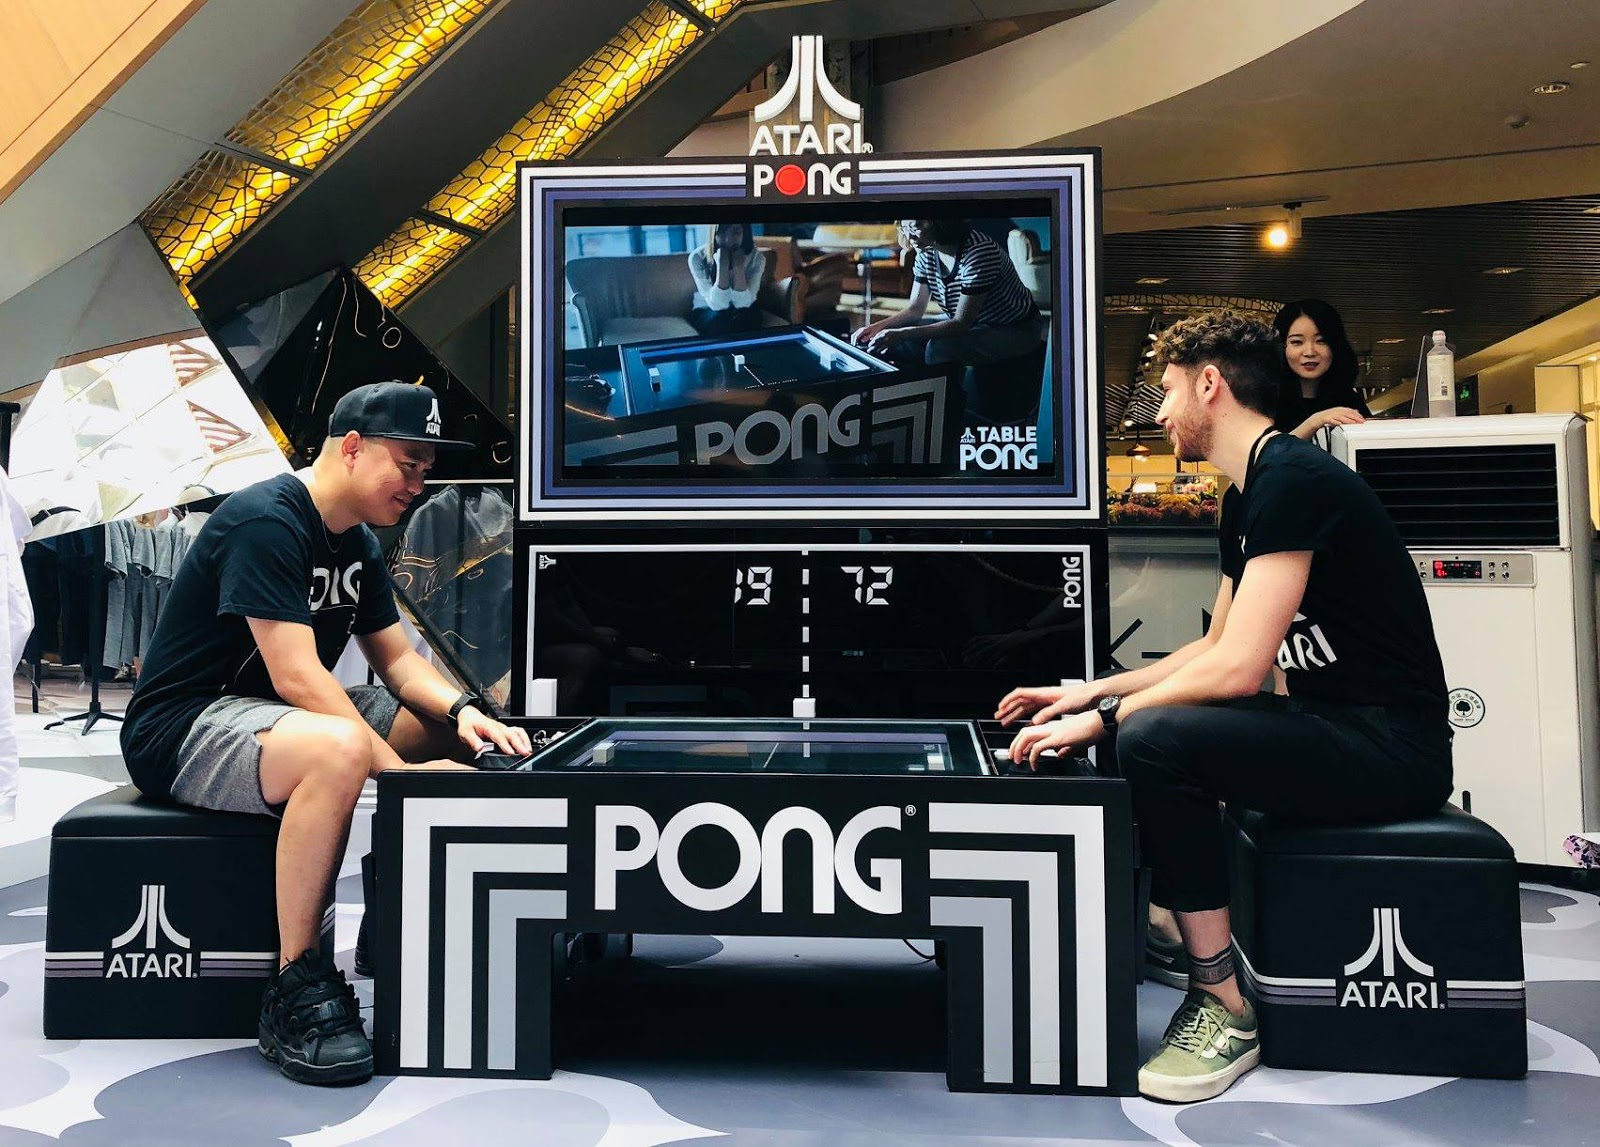 Atari Pong Tables CES 2019 Coverage